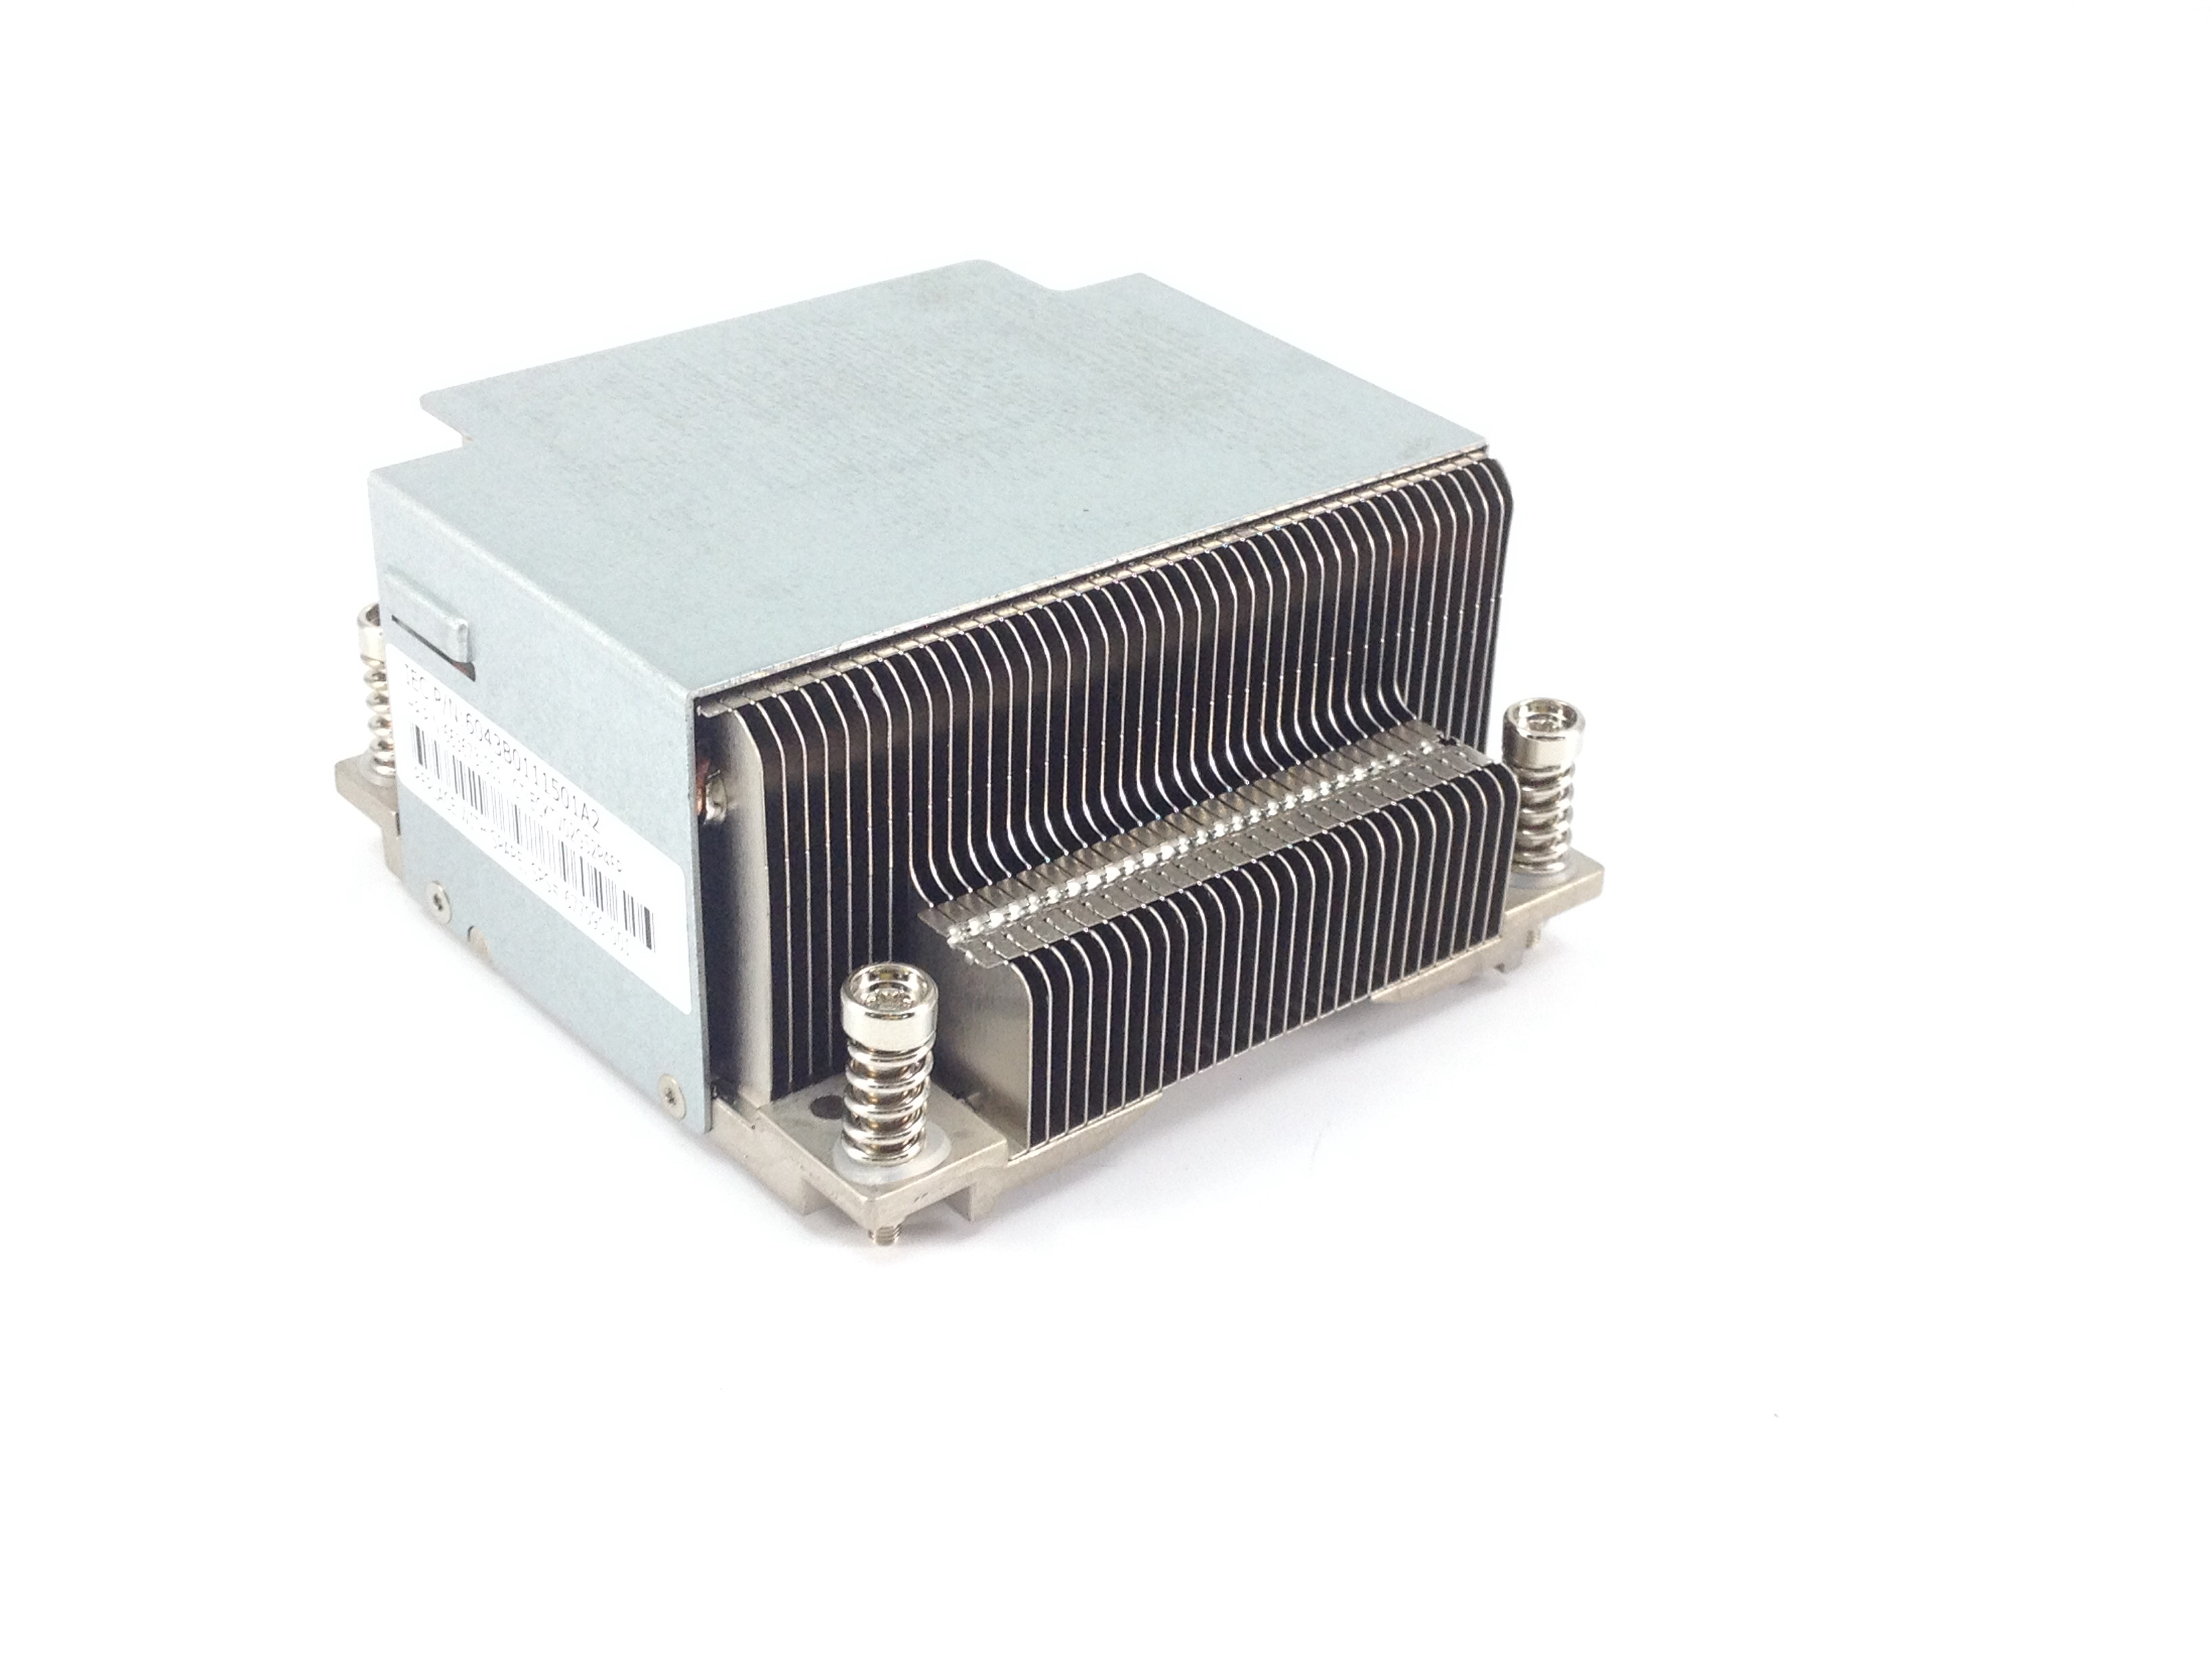 HP Proliant DL580 G8 Screw Type Server Heatsink (735514-001)